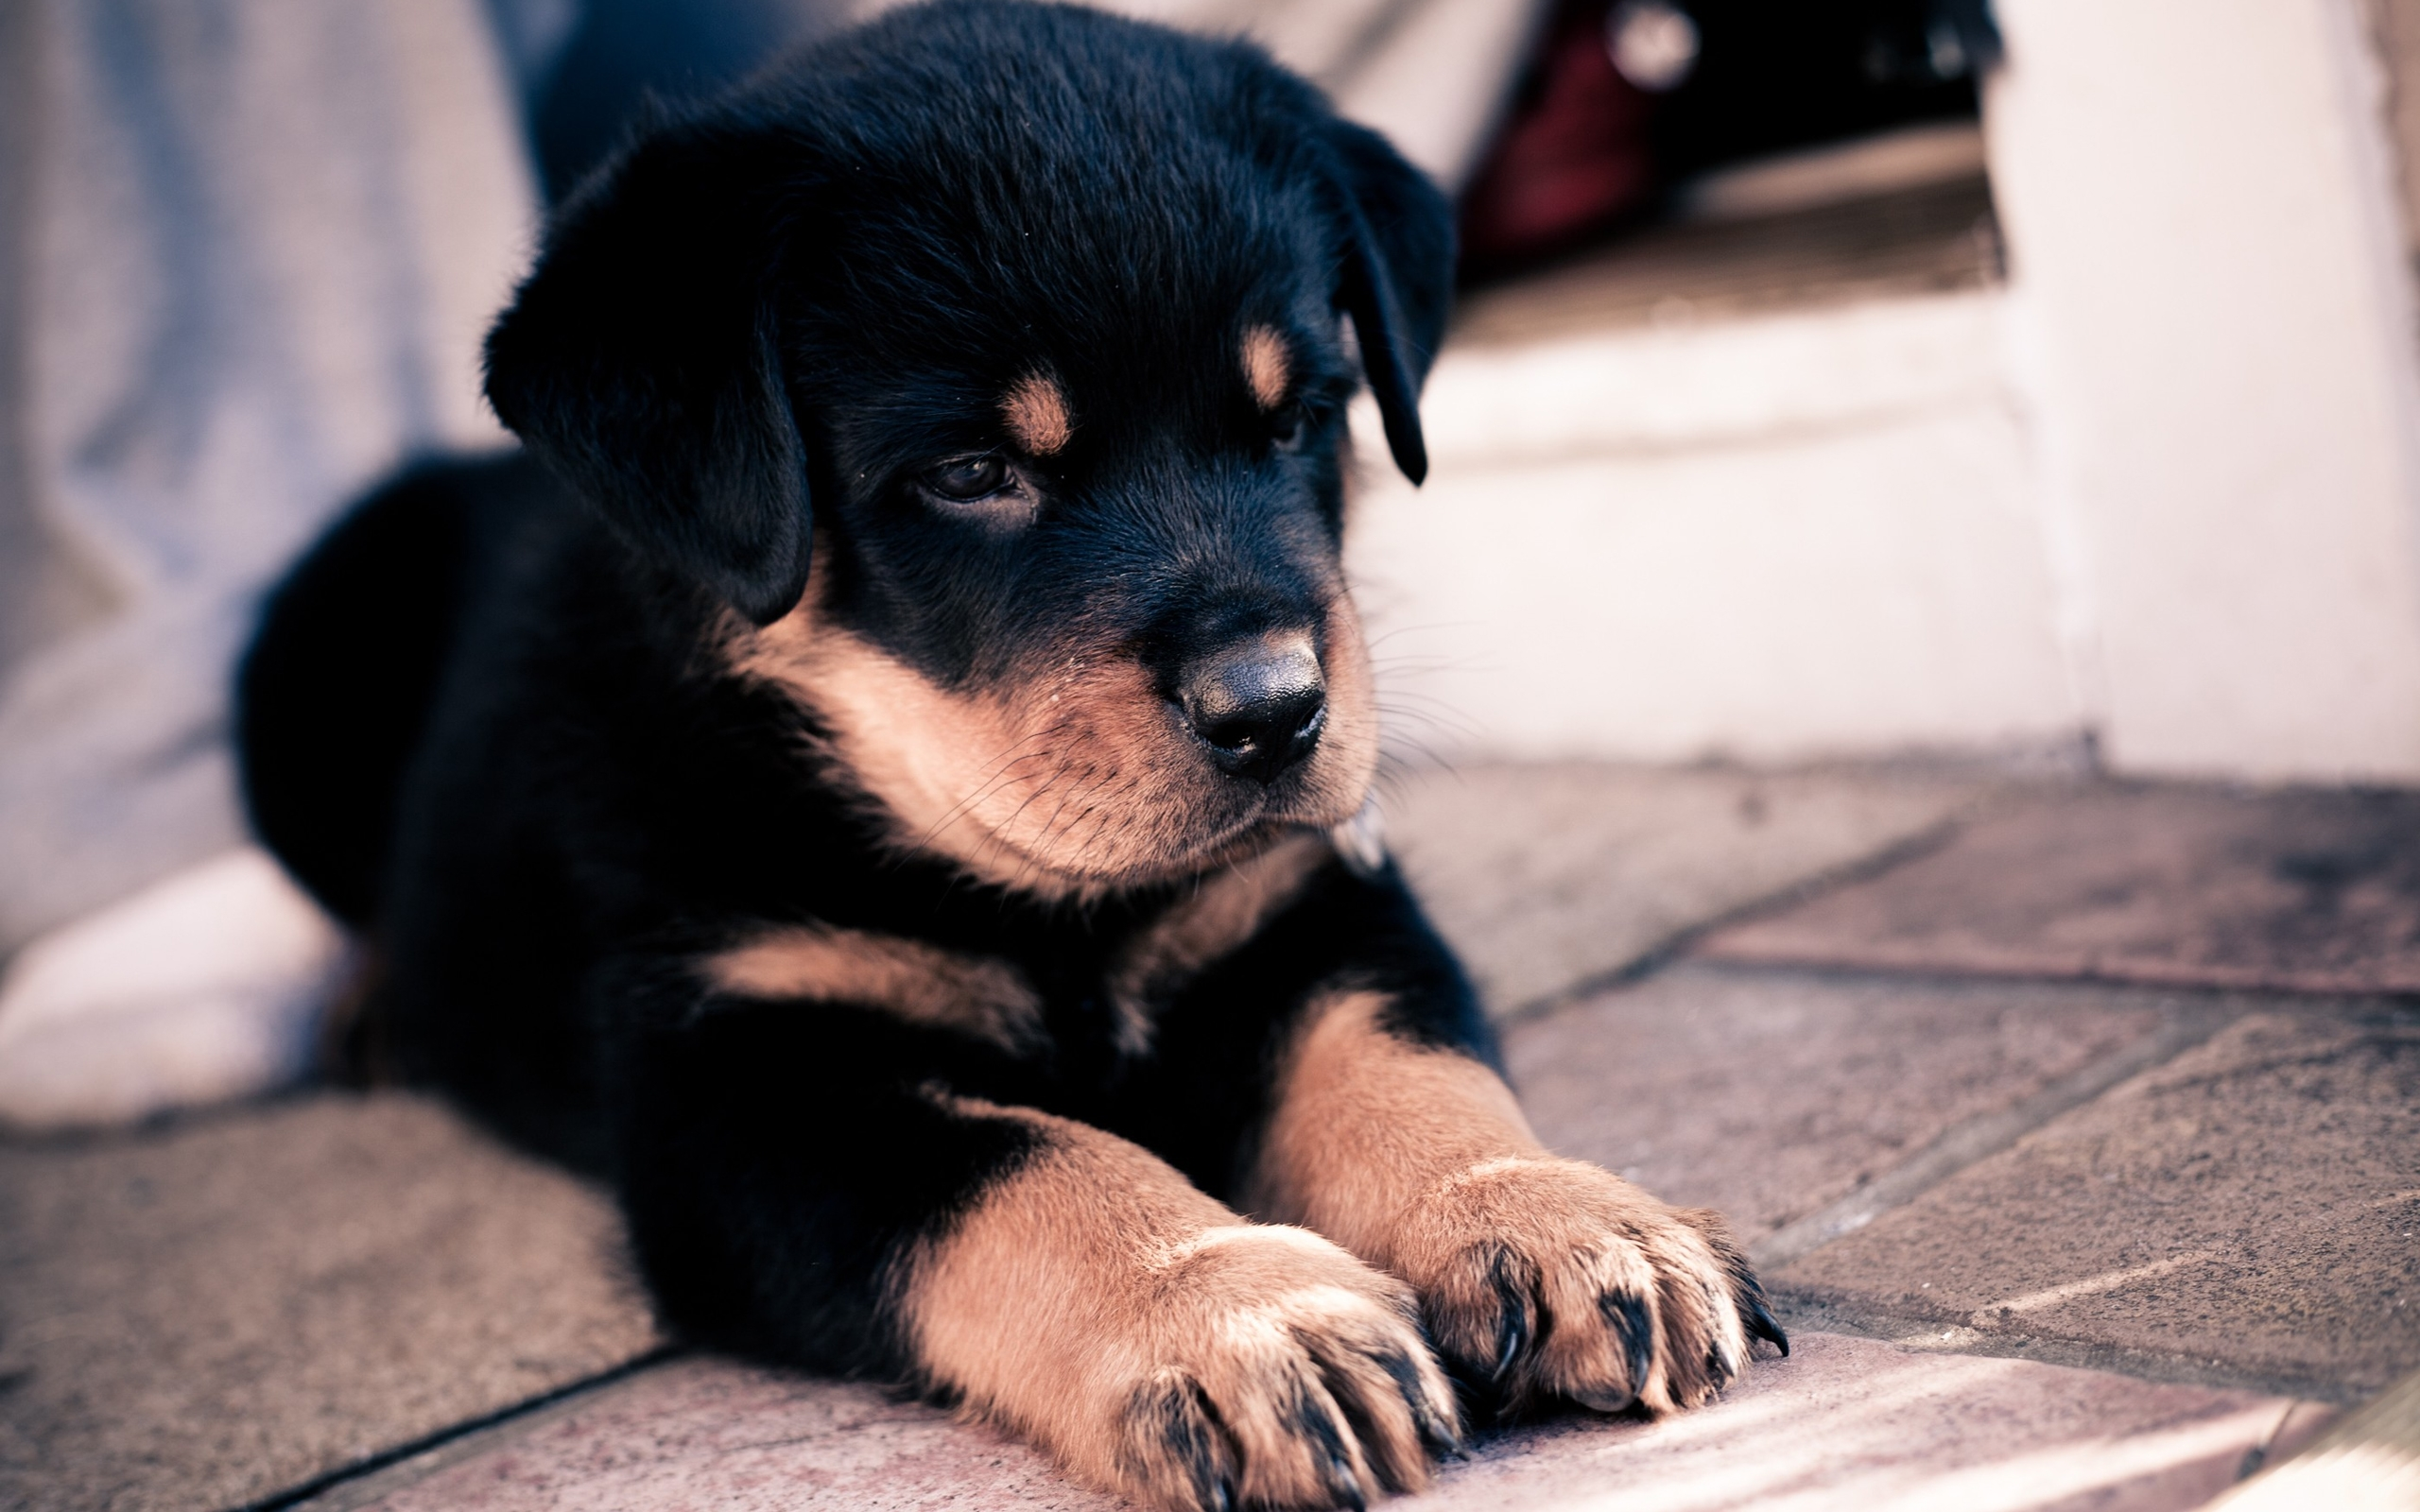 40709 download wallpaper Animals, Dogs screensavers and pictures for free